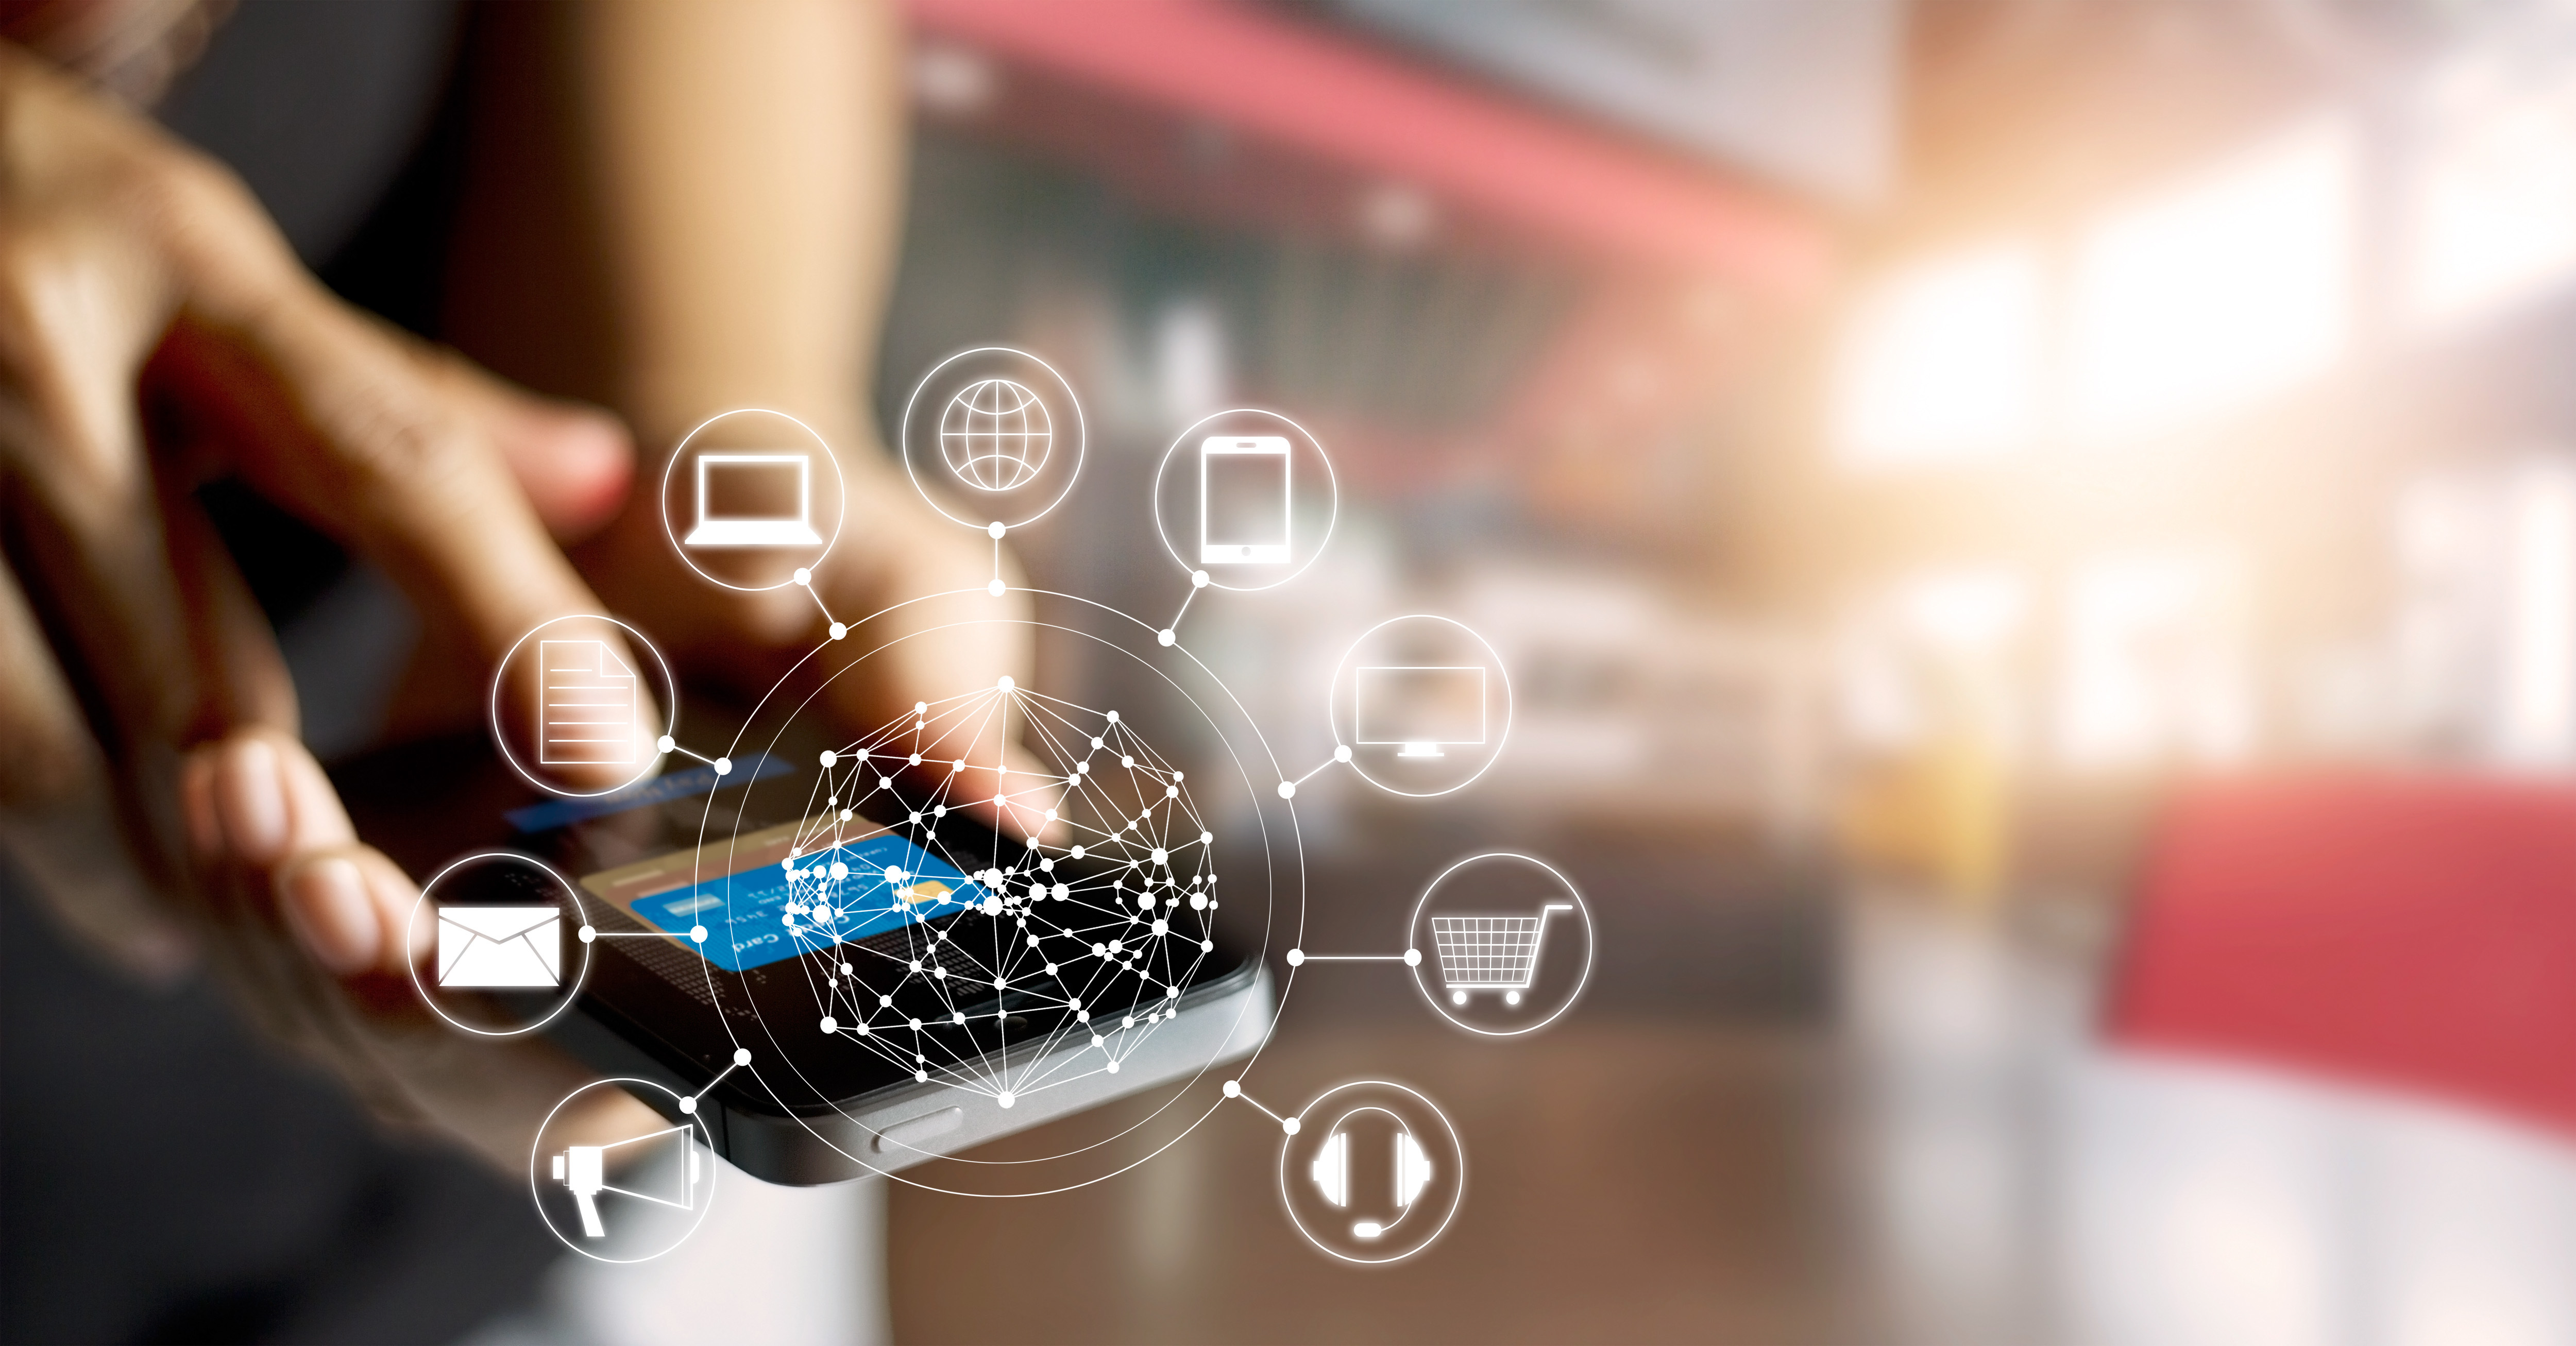 7 Payment Trends to Expect in 2020